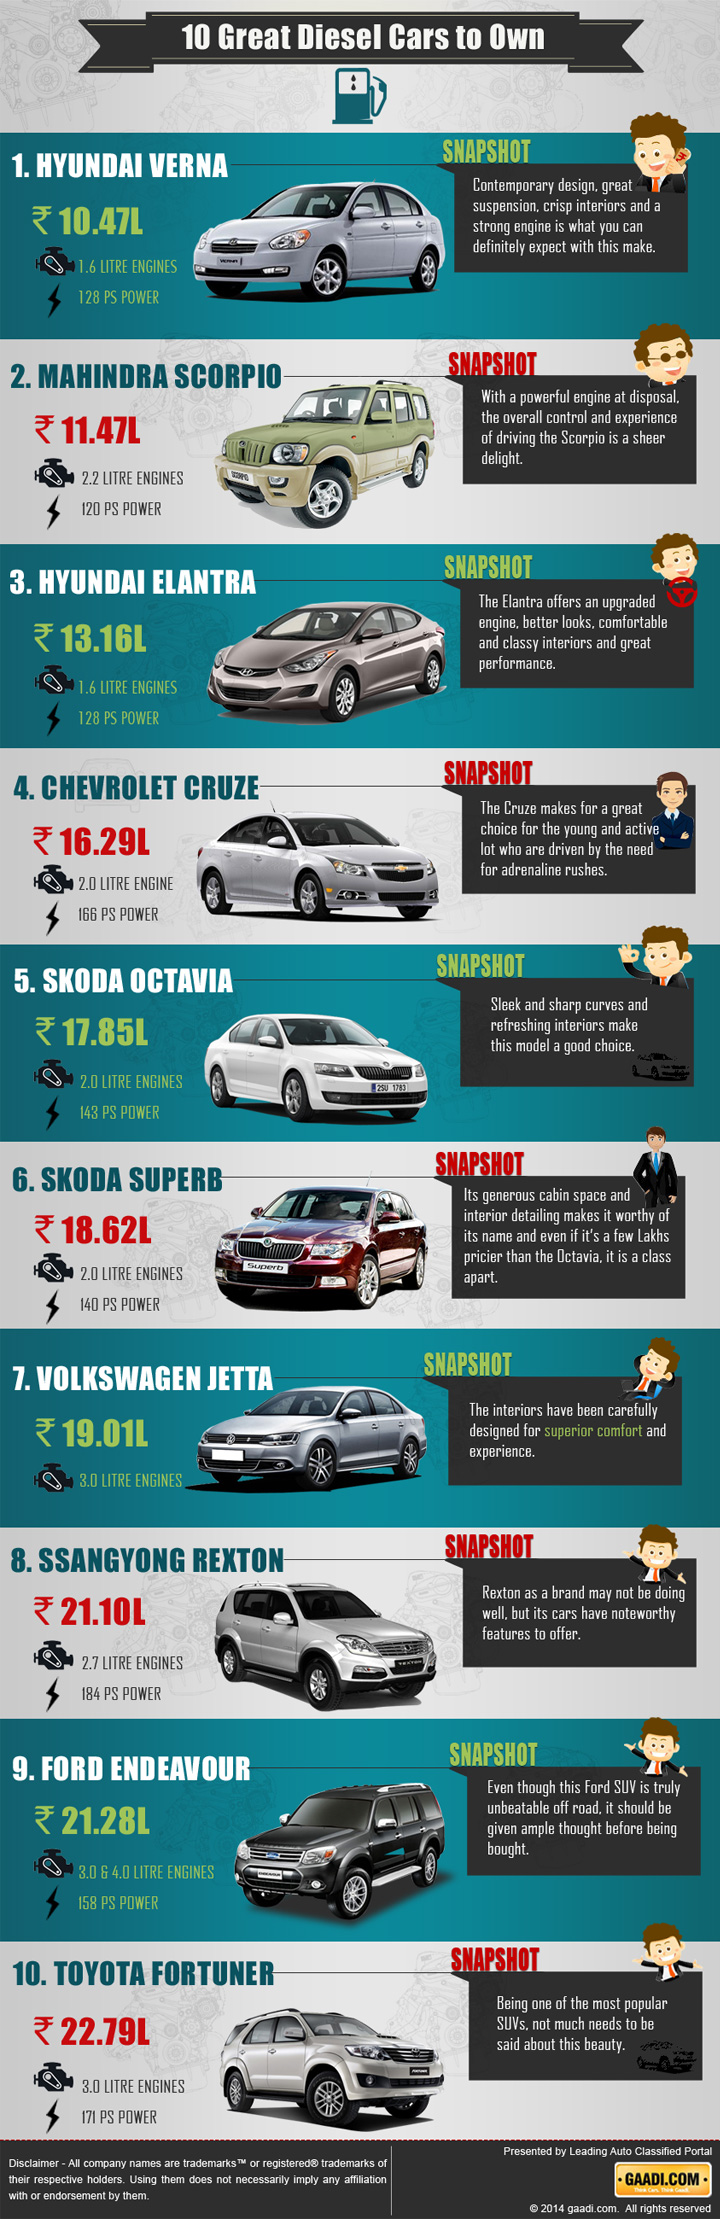 10-great-diesel-cars-to-own-infographic-plaza